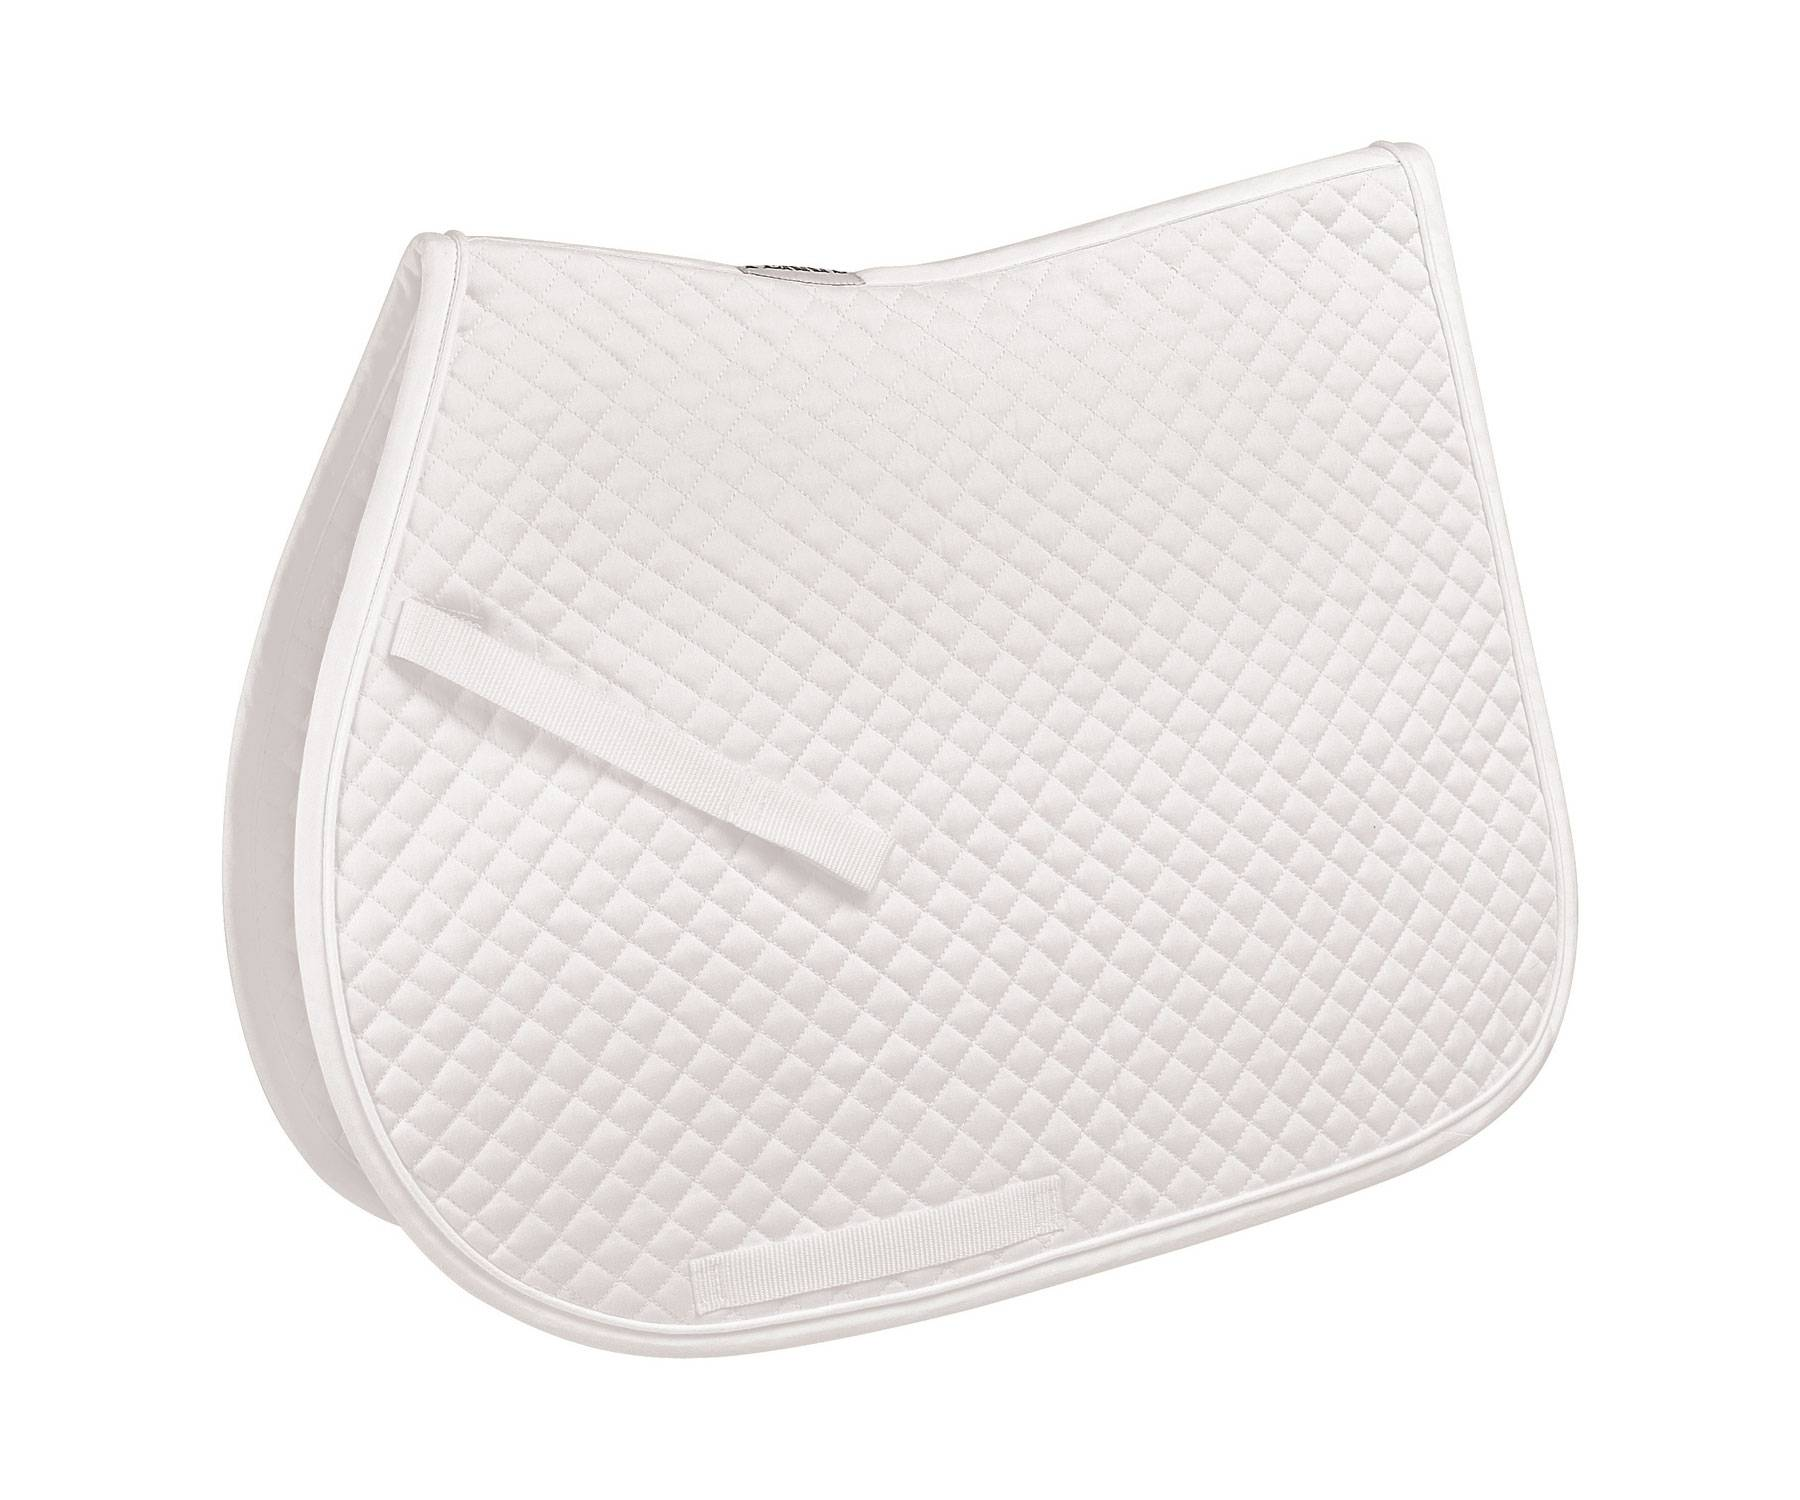 Perri's Pony A/P Quilted Saddle Pad